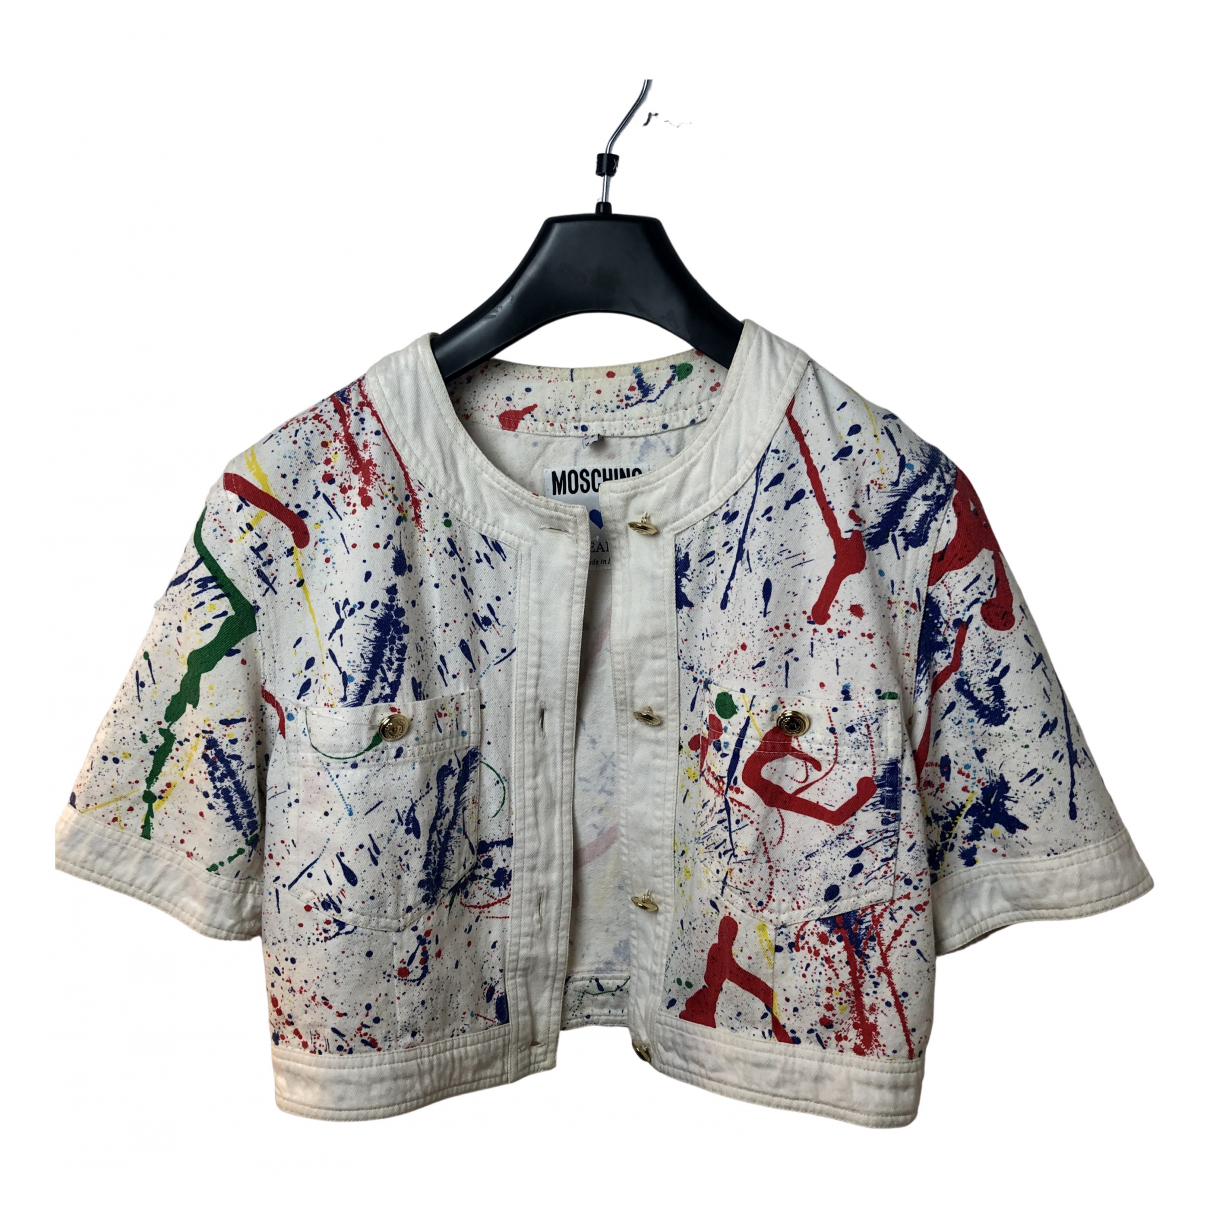 Moschino Cheap And Chic - Veste   pour femme en coton - multicolore